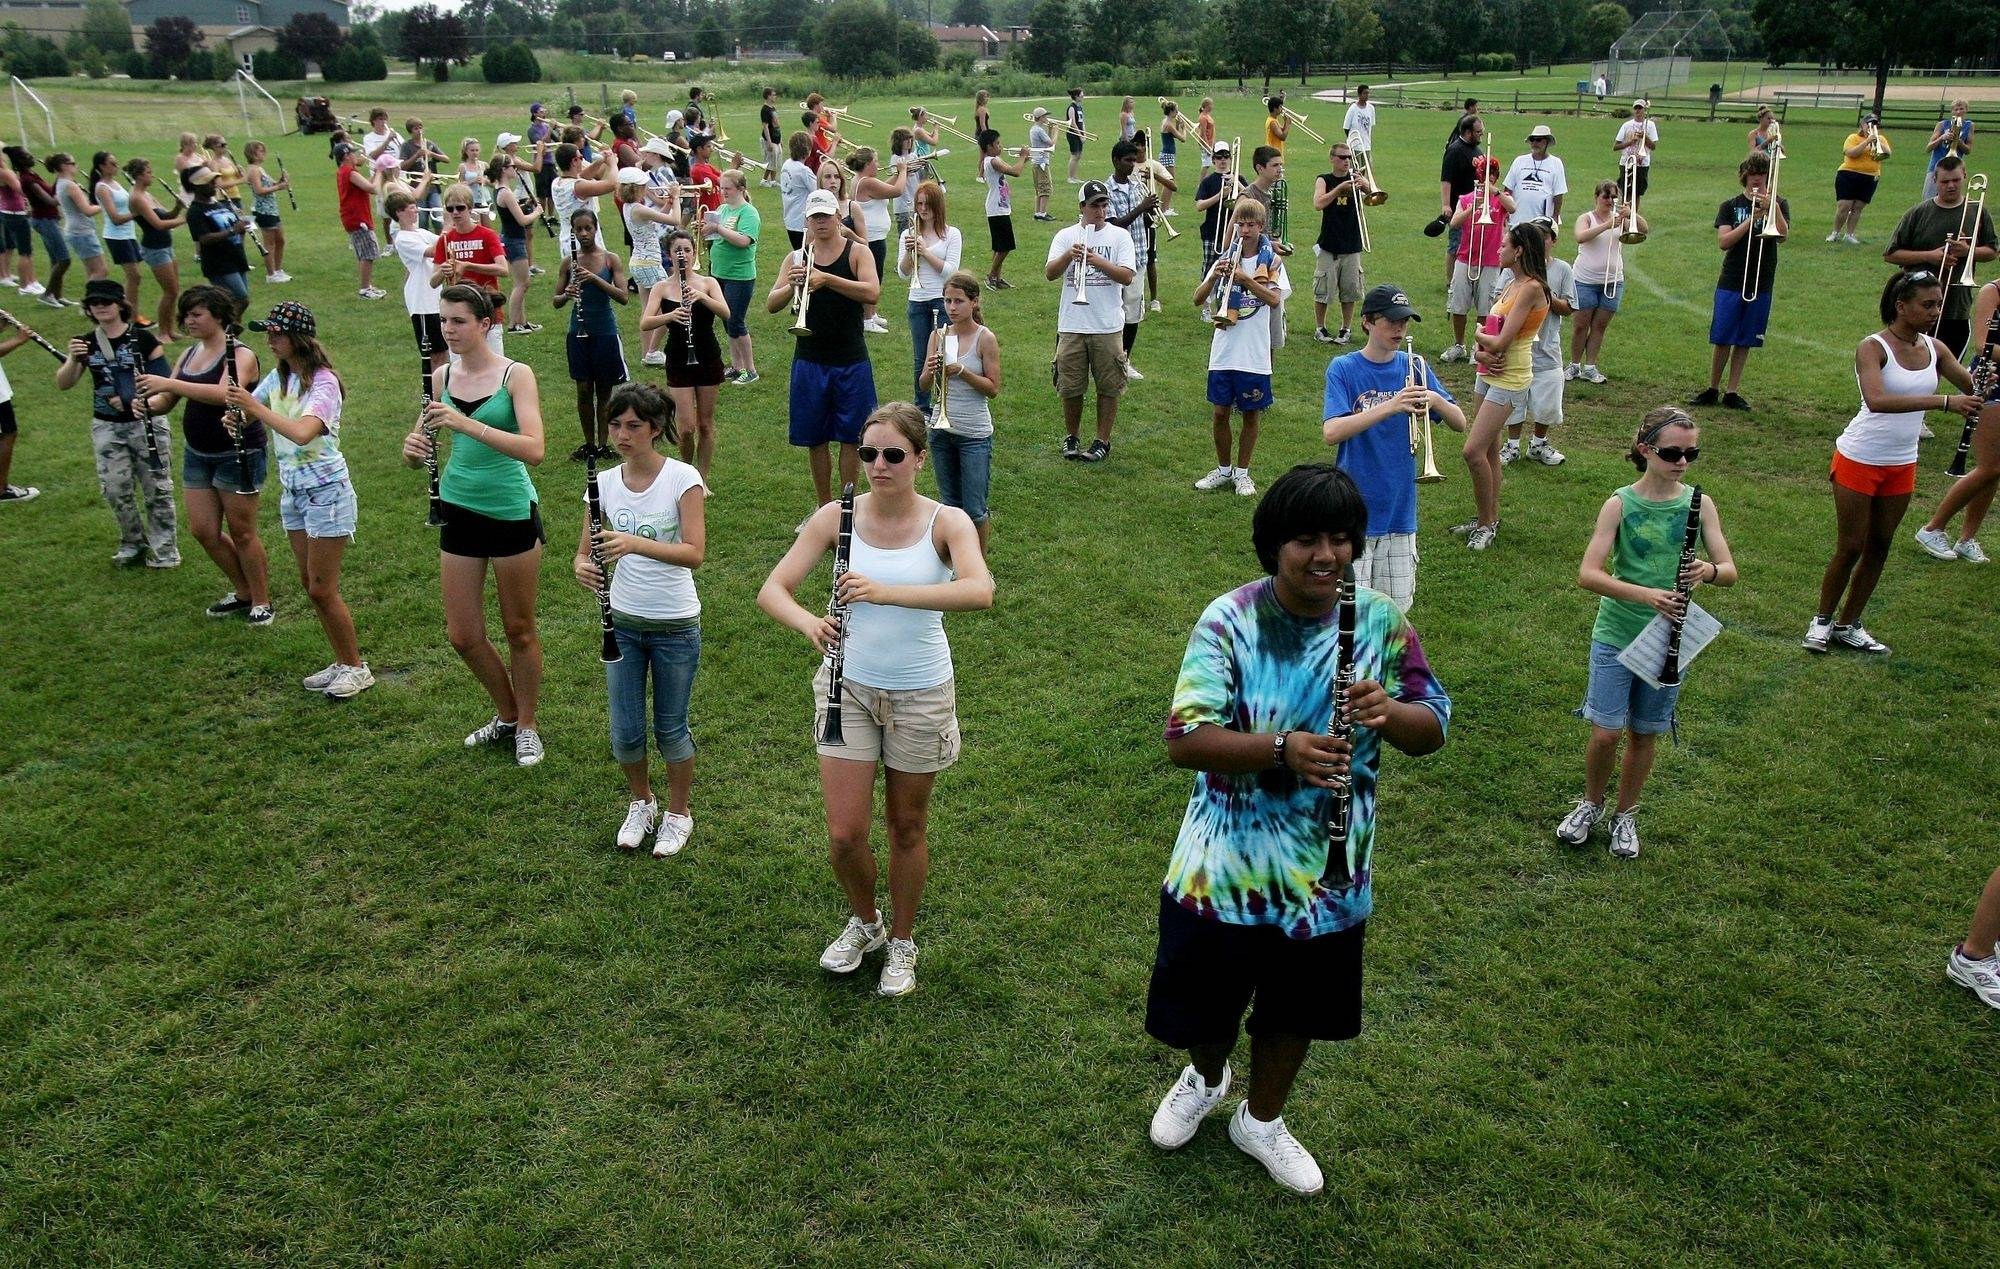 The marching band practices at Warren Township High School in Gurnee. This year, directors formed one marching band that they say is the largest in the state.